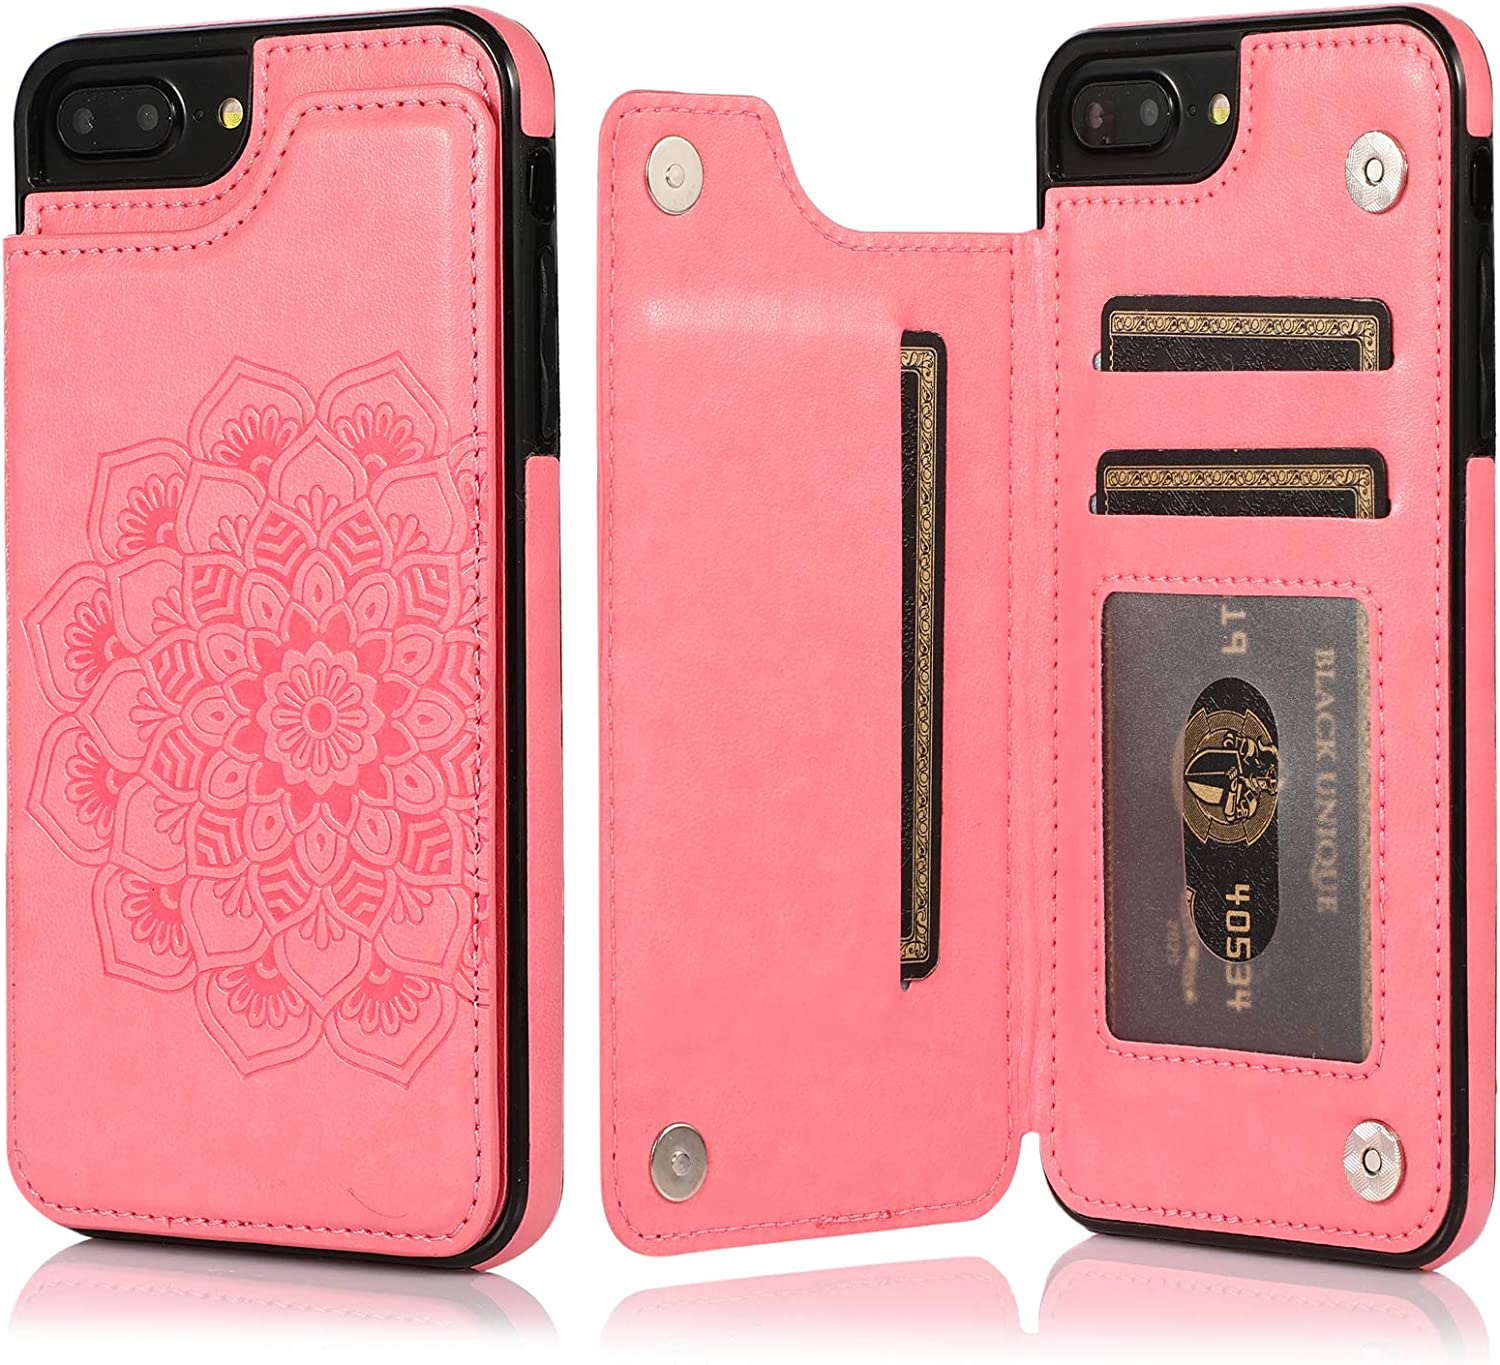 iPhone 7/8 Plus Case,Acxlife iPhone 7/8+ Plus Wallet Case Protective Cover with Cards Slot Holder and Purse Leather Case Compatible with iPhone7/8 Plus (Pink)